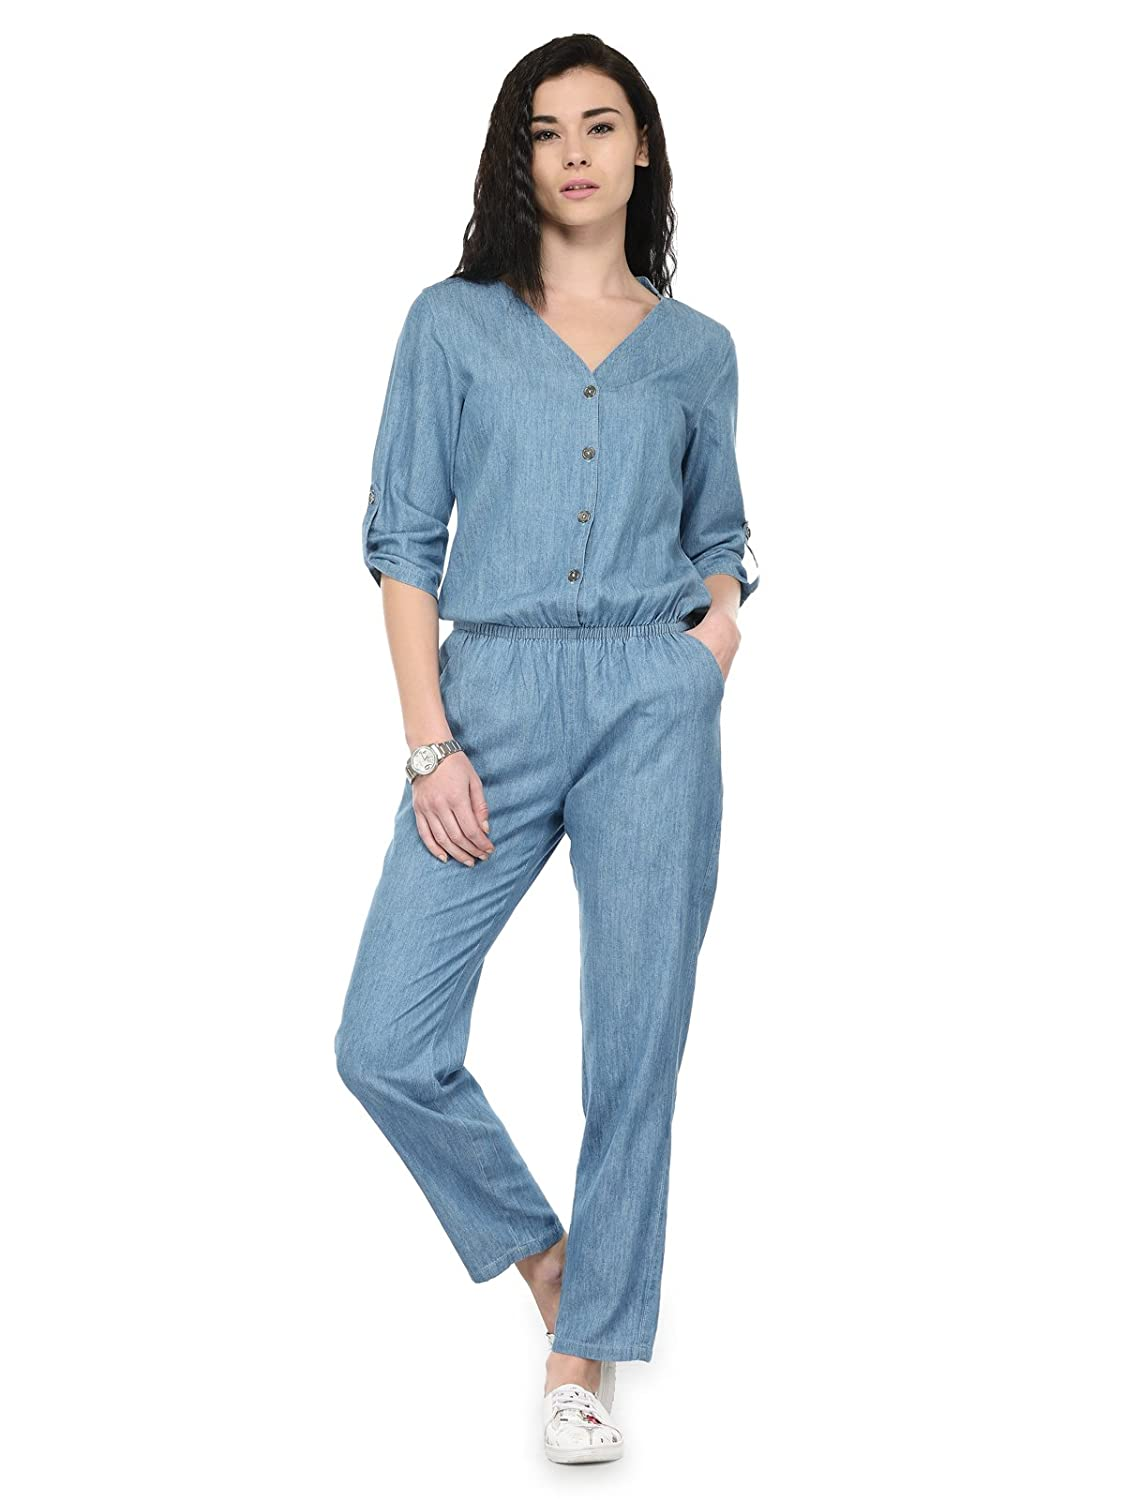 Jumpsuits For Women: Buy Jumpsuits For Girls online at best prices ...